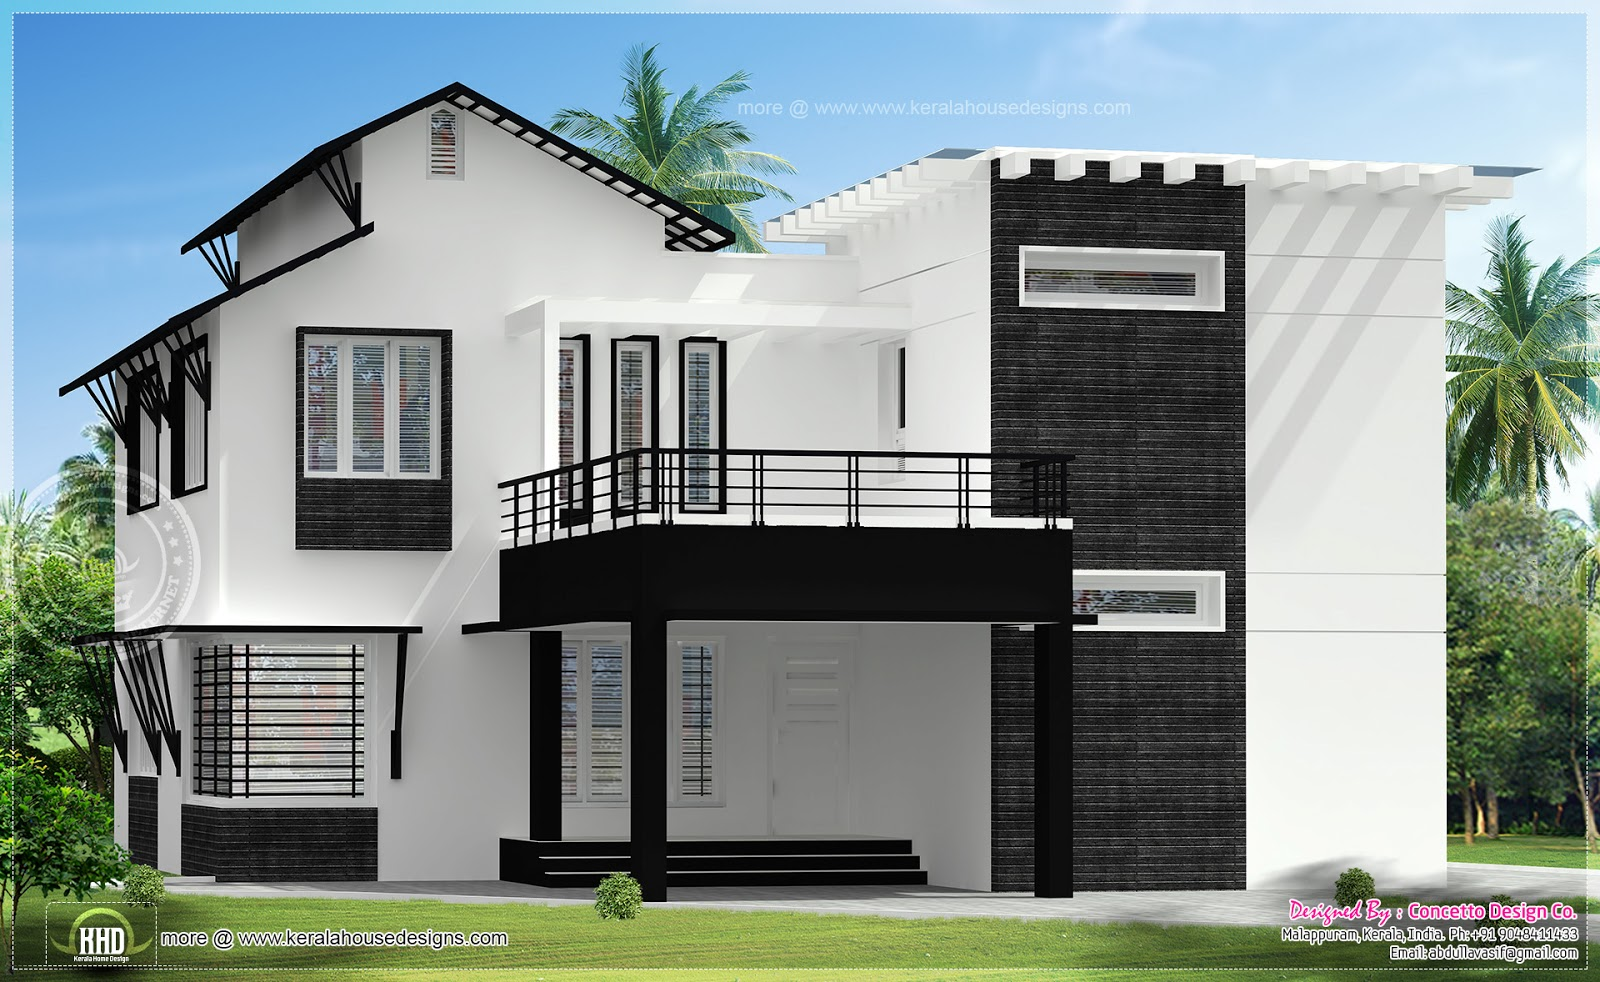 Ground Floor Elevation Colors : Different house exteriors by concetto design kerala